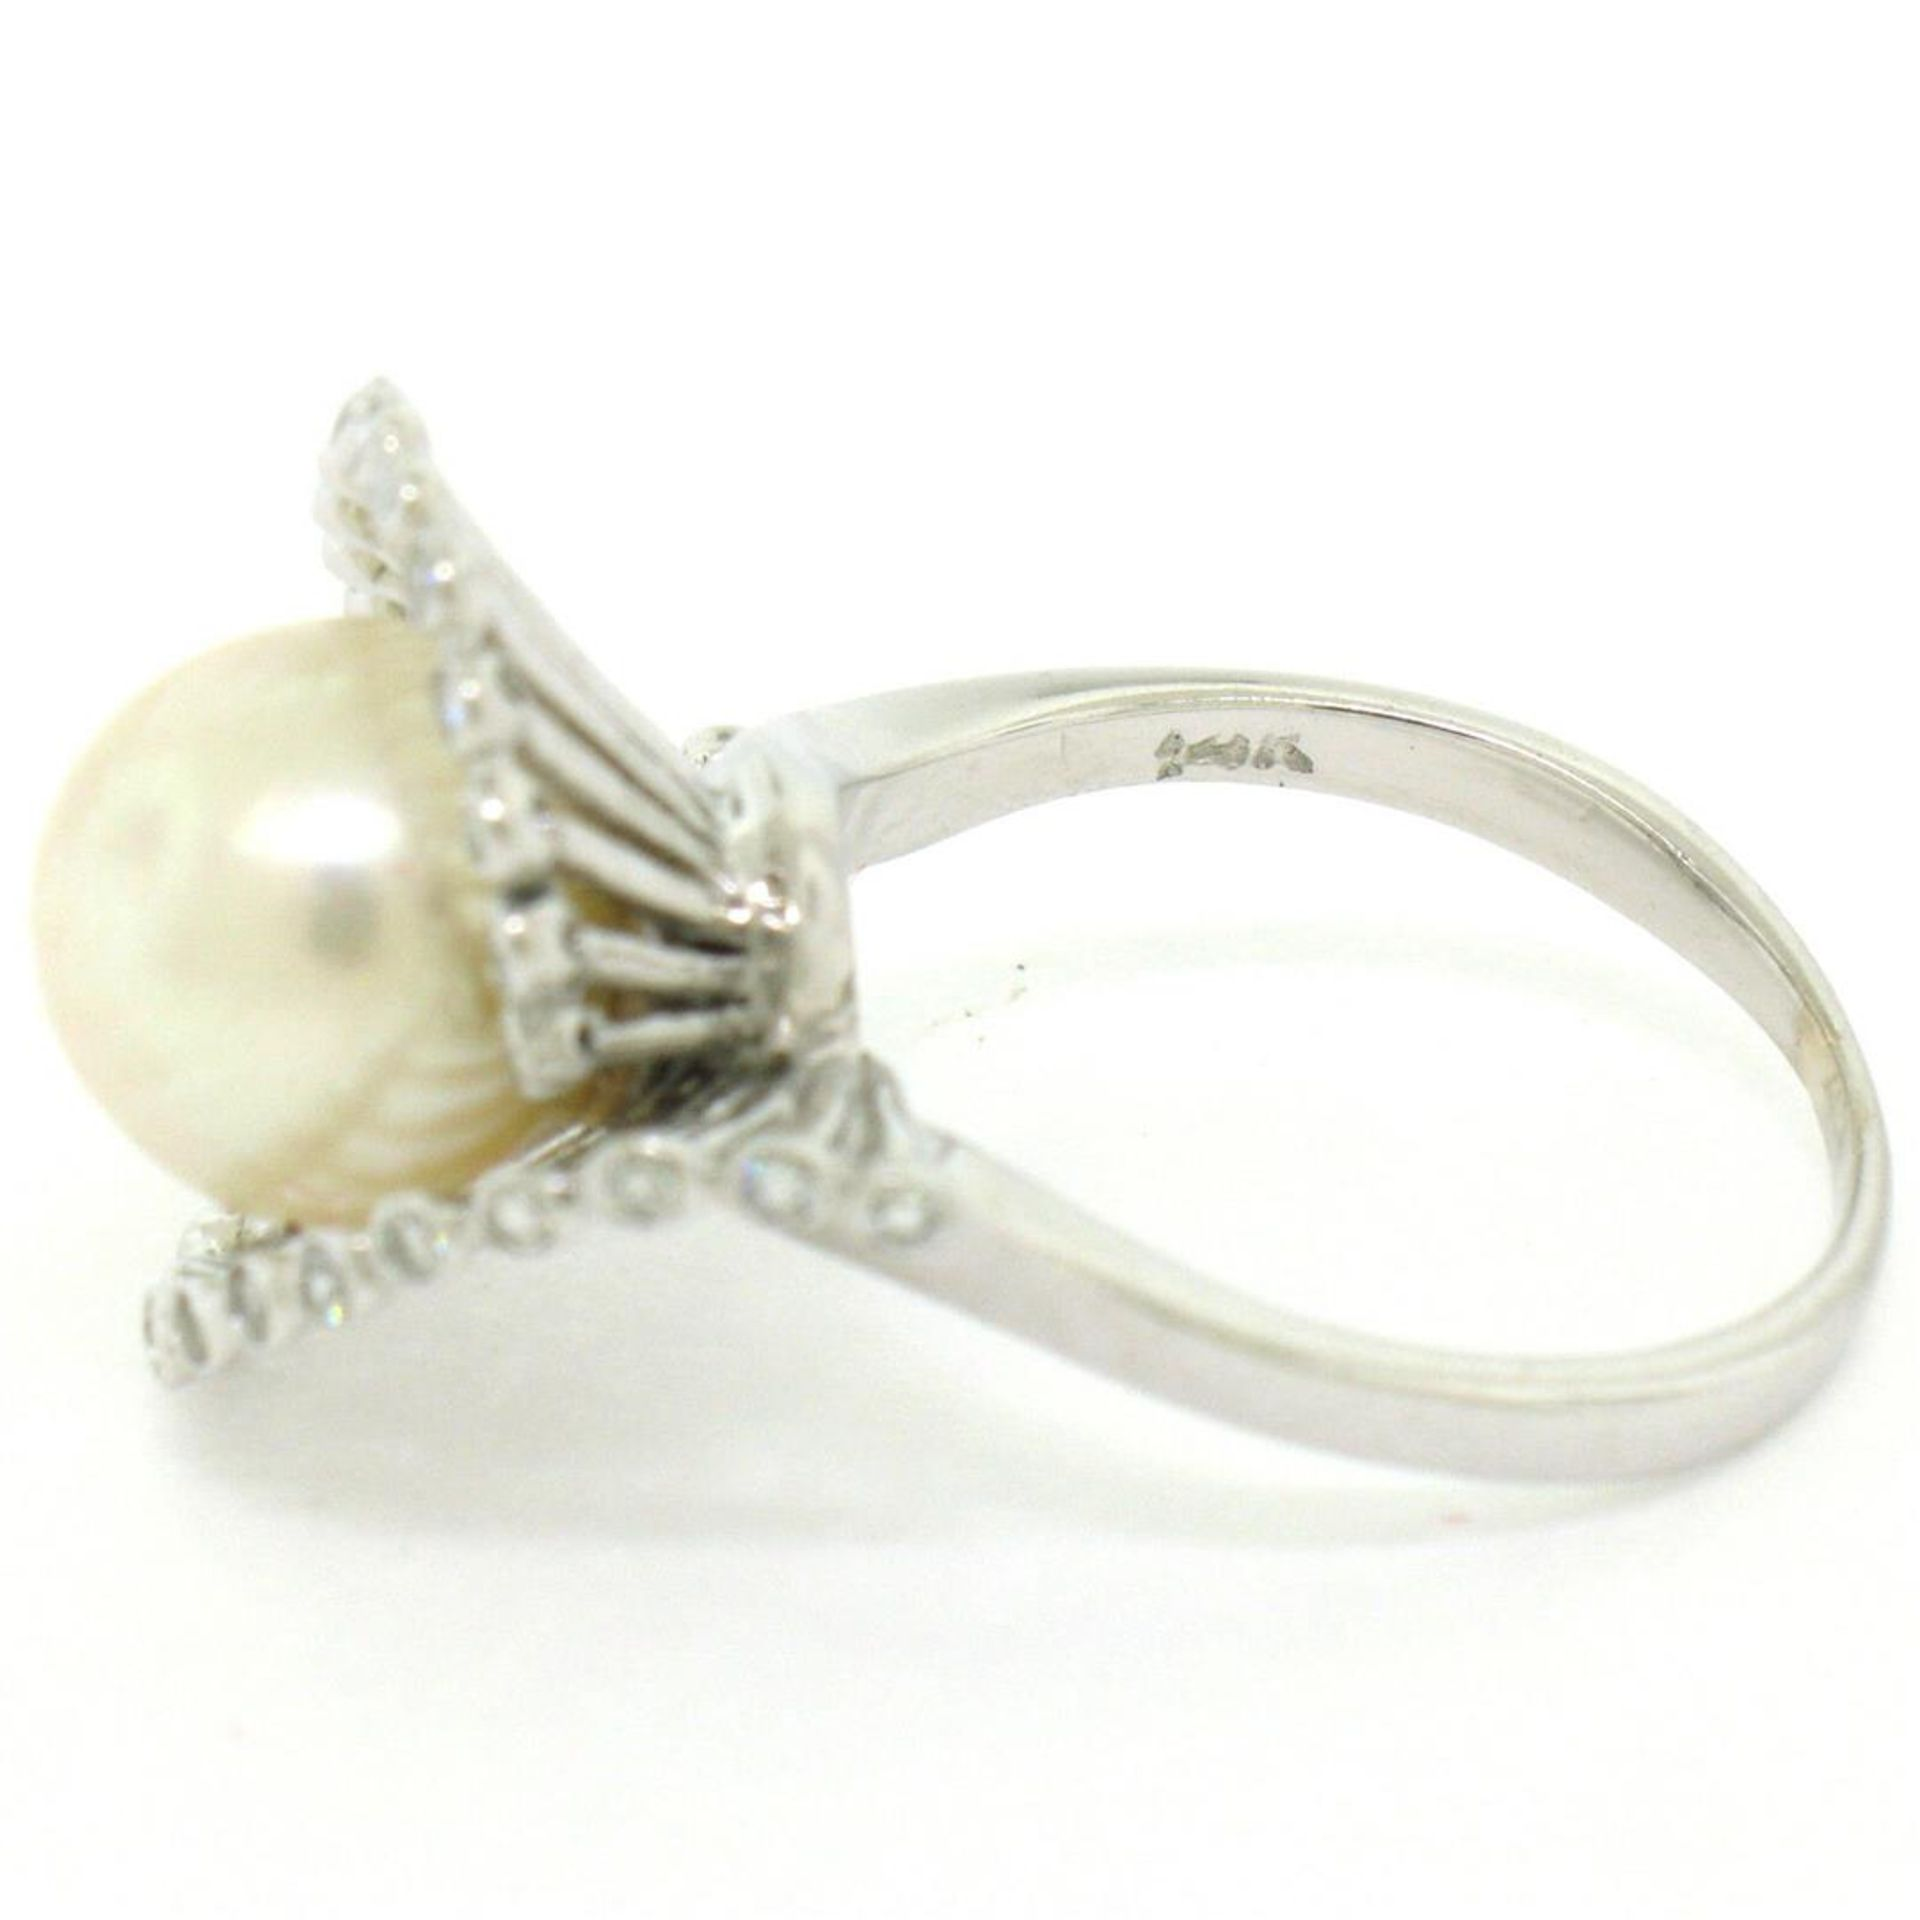 Vintage 14K White Gold 8.5mm Pearl Bezel Diamond 2 Wave Bypass Cocktail Ring - Image 7 of 8